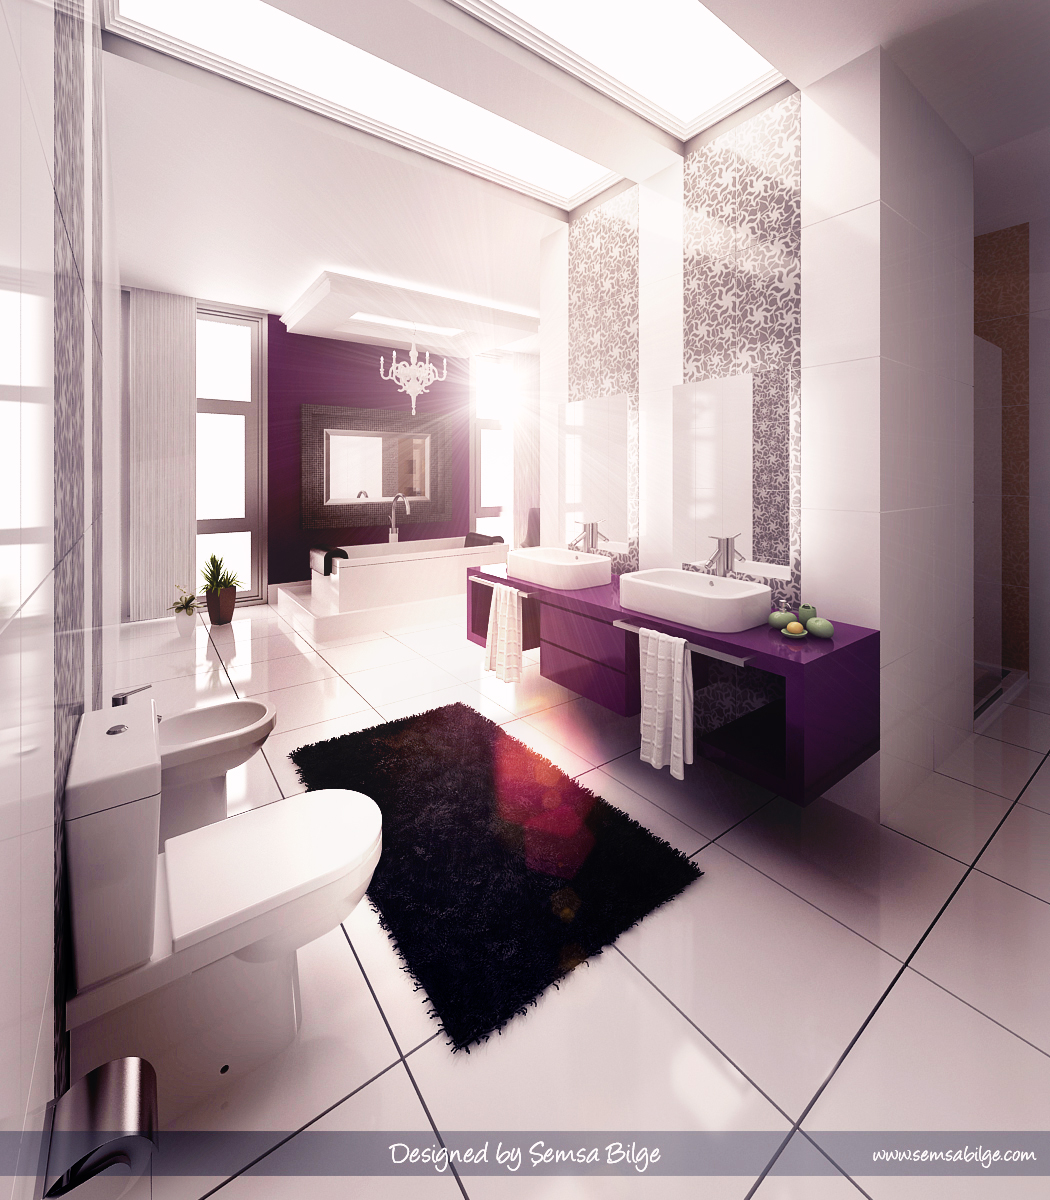 Inspiring bathroom designs for the soul - Designer bathroom ...